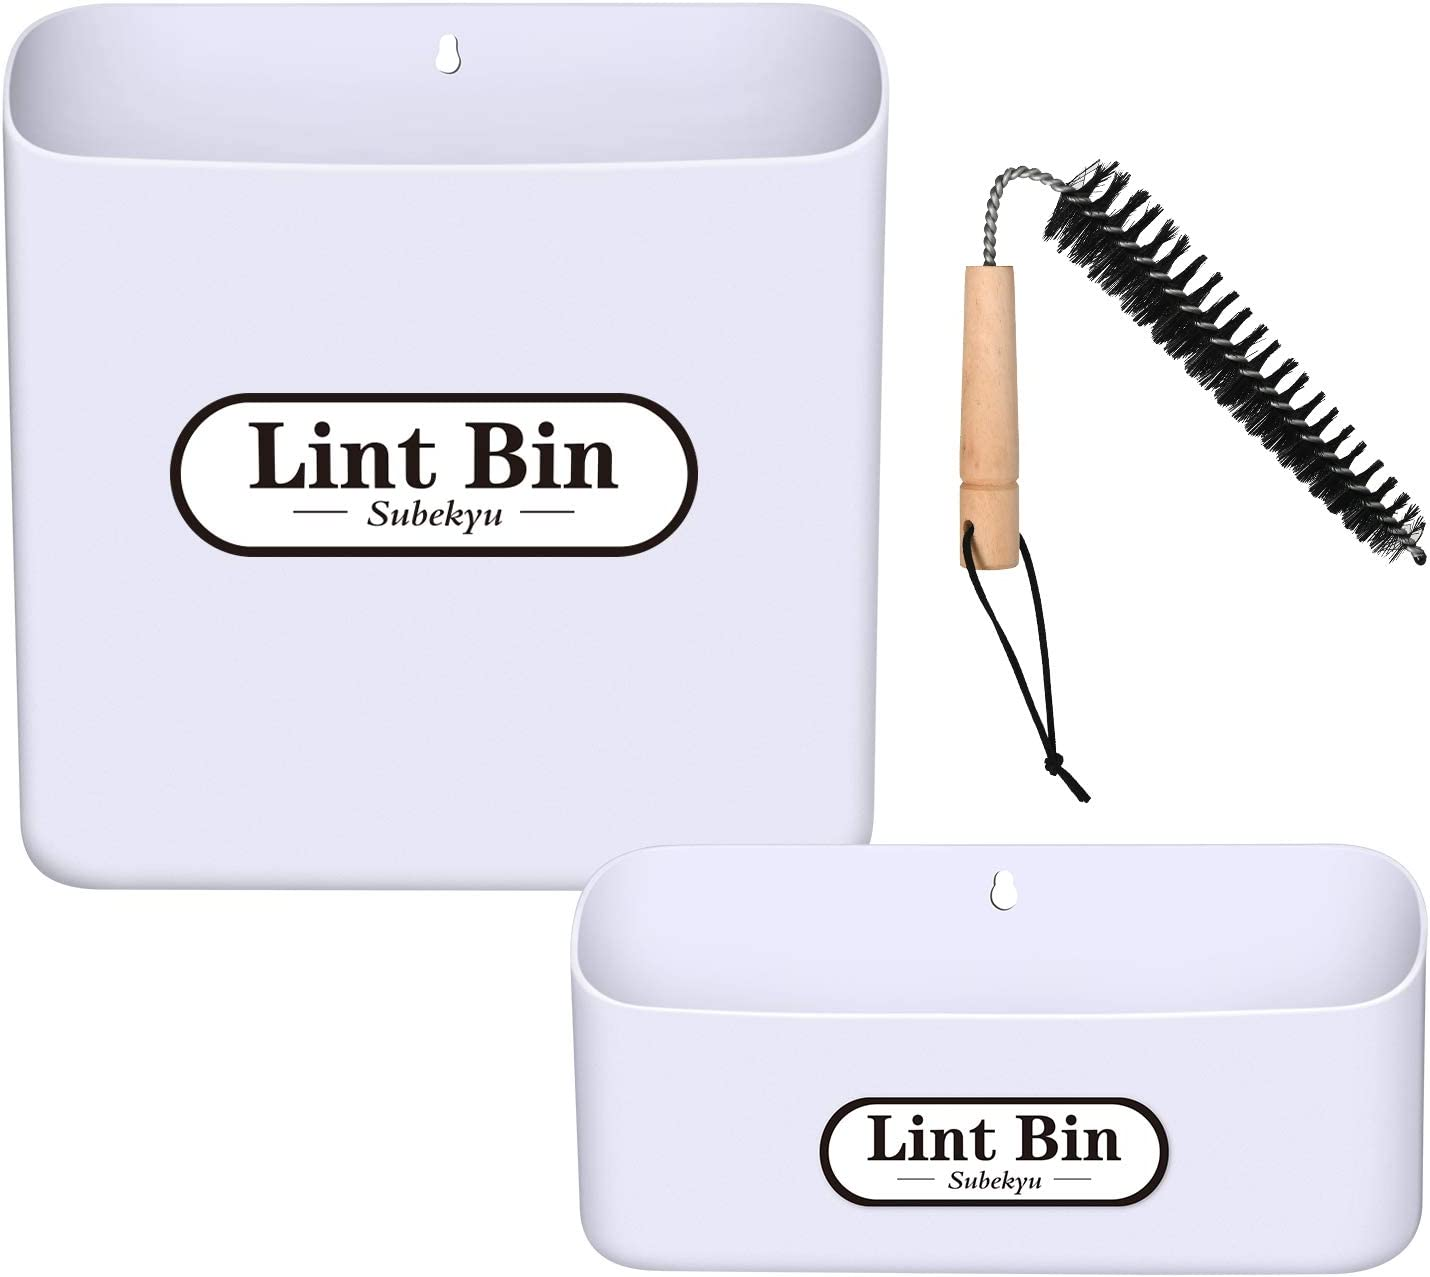 SUBEKYU Large Magnetic Hanging Lint Bins for Laundry Room Dryer/Wall, Space Saving Big/Small Lint Holder Bin Container with Lint Brush, Plastic, White